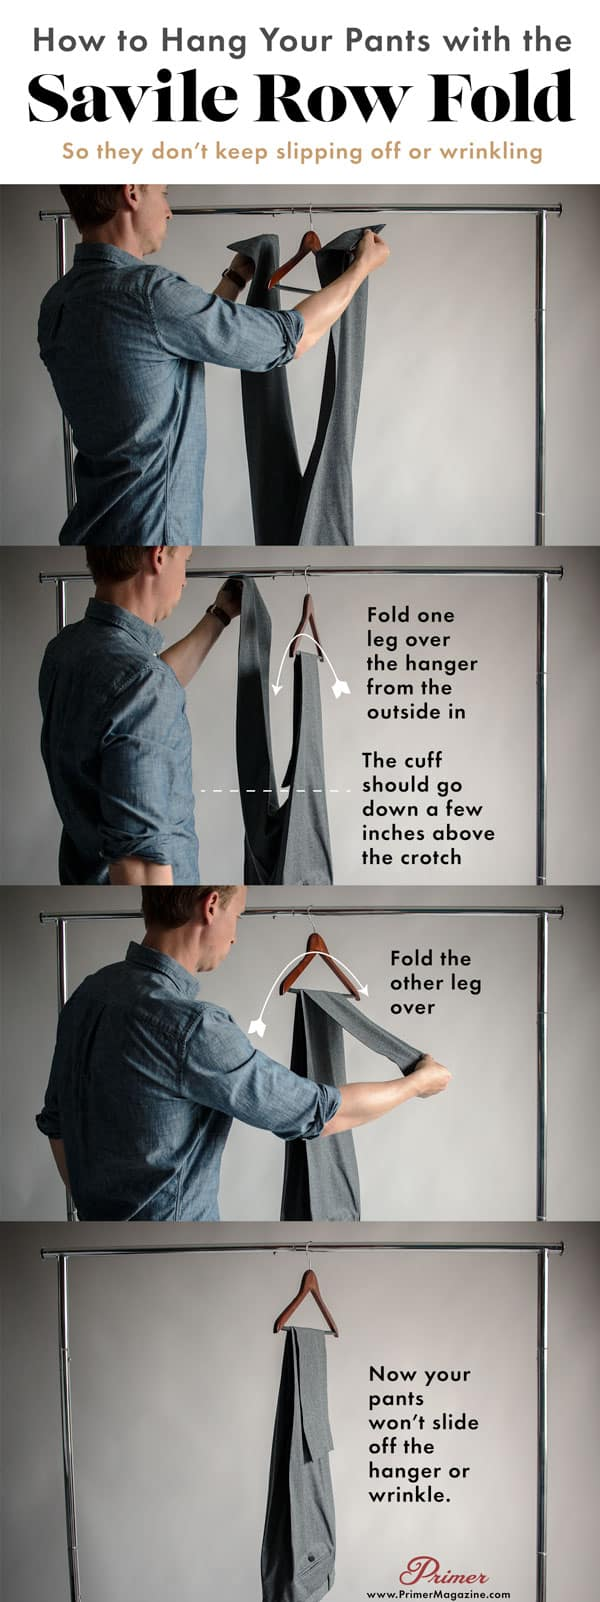 how to hang pants with the savile row fold so they don't wrinkle or fall off